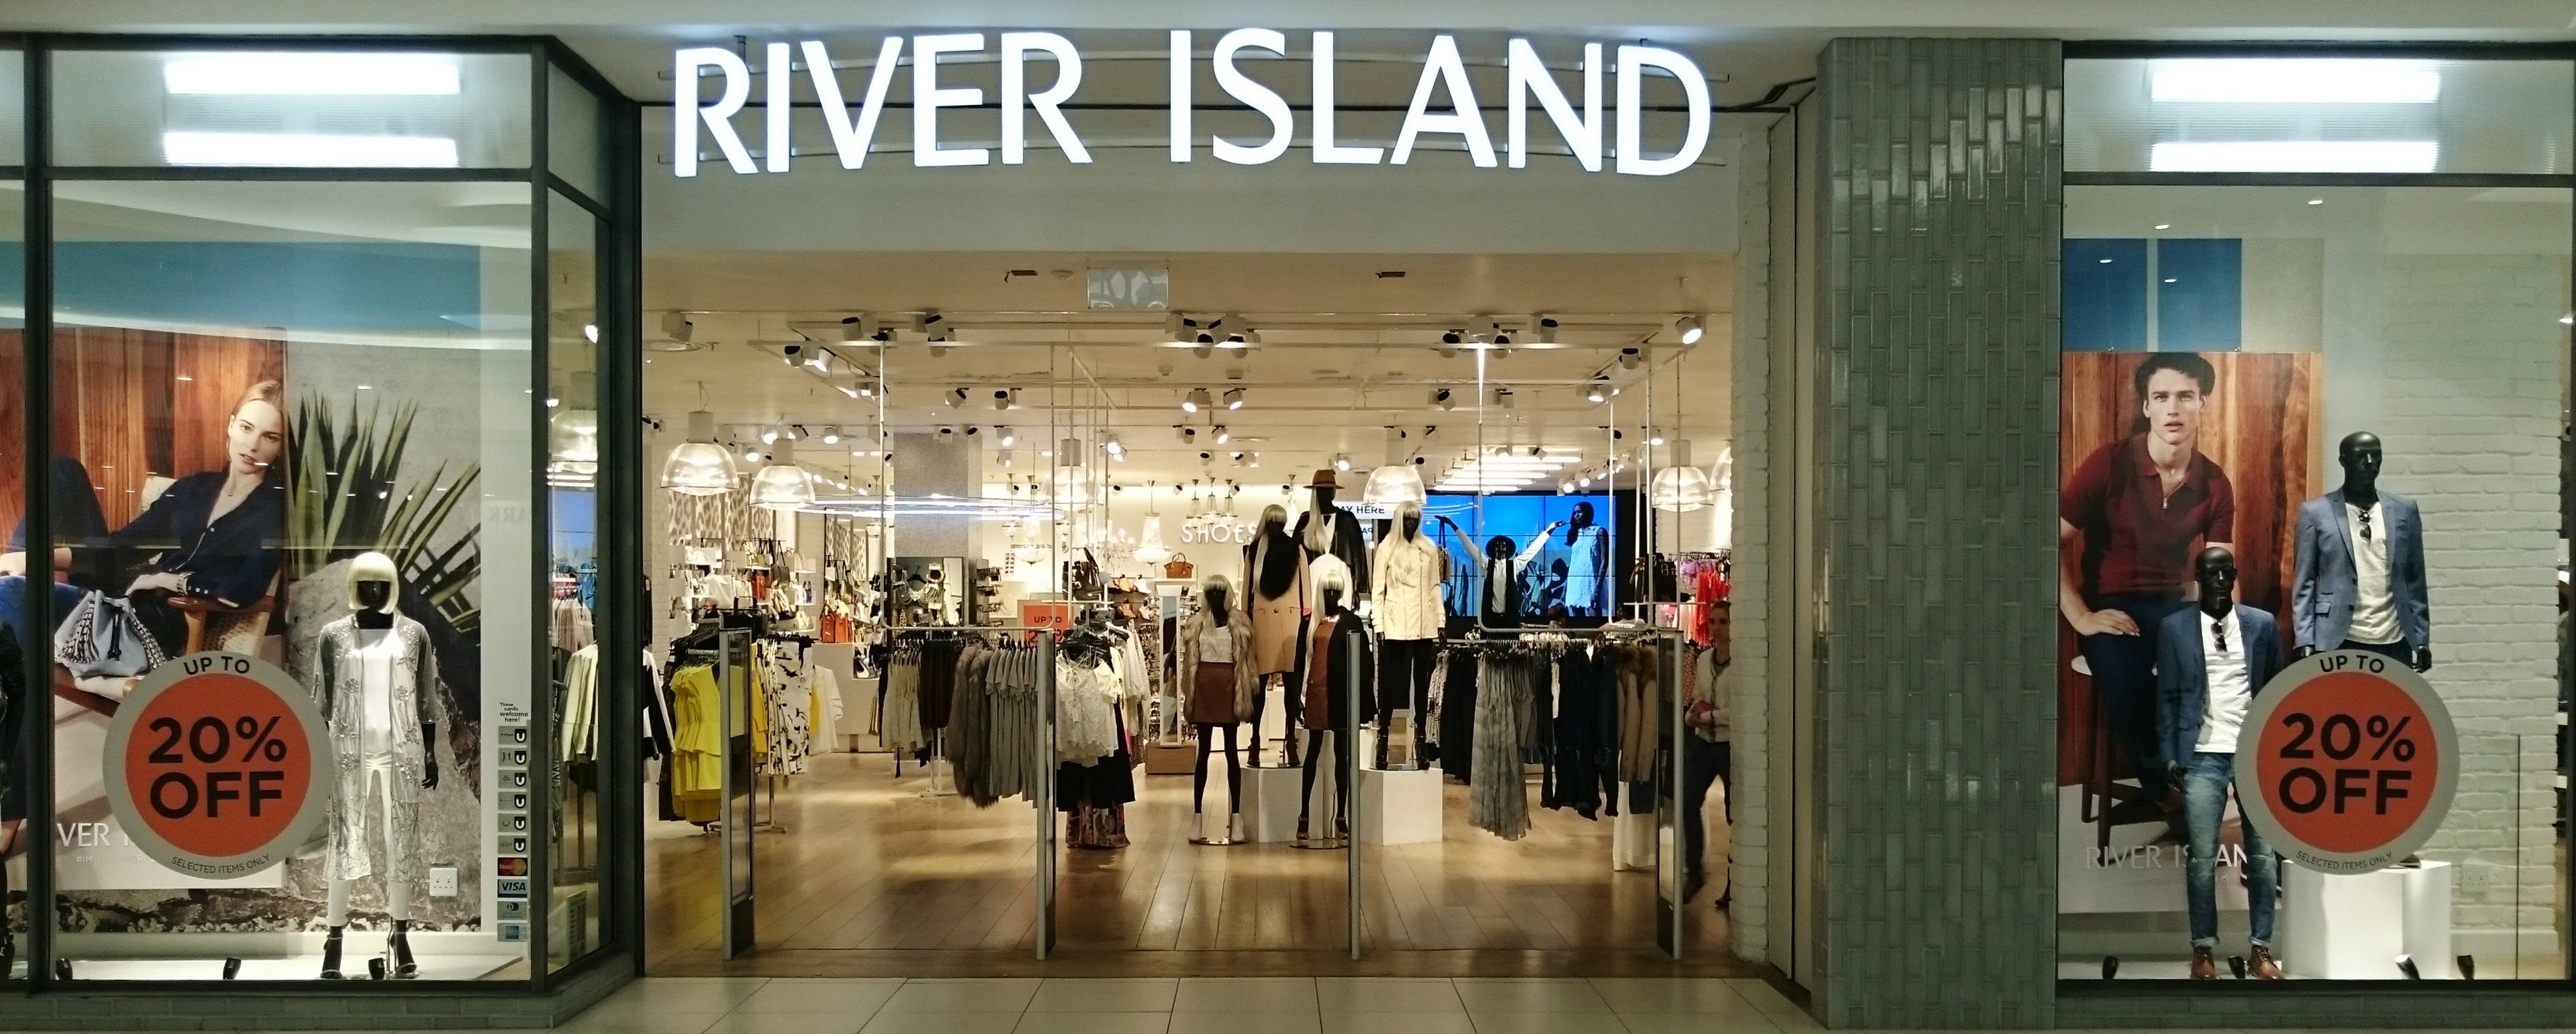 7e02435b2a7 We have also rolled out our audio solution to other River Island stores  countrywide.